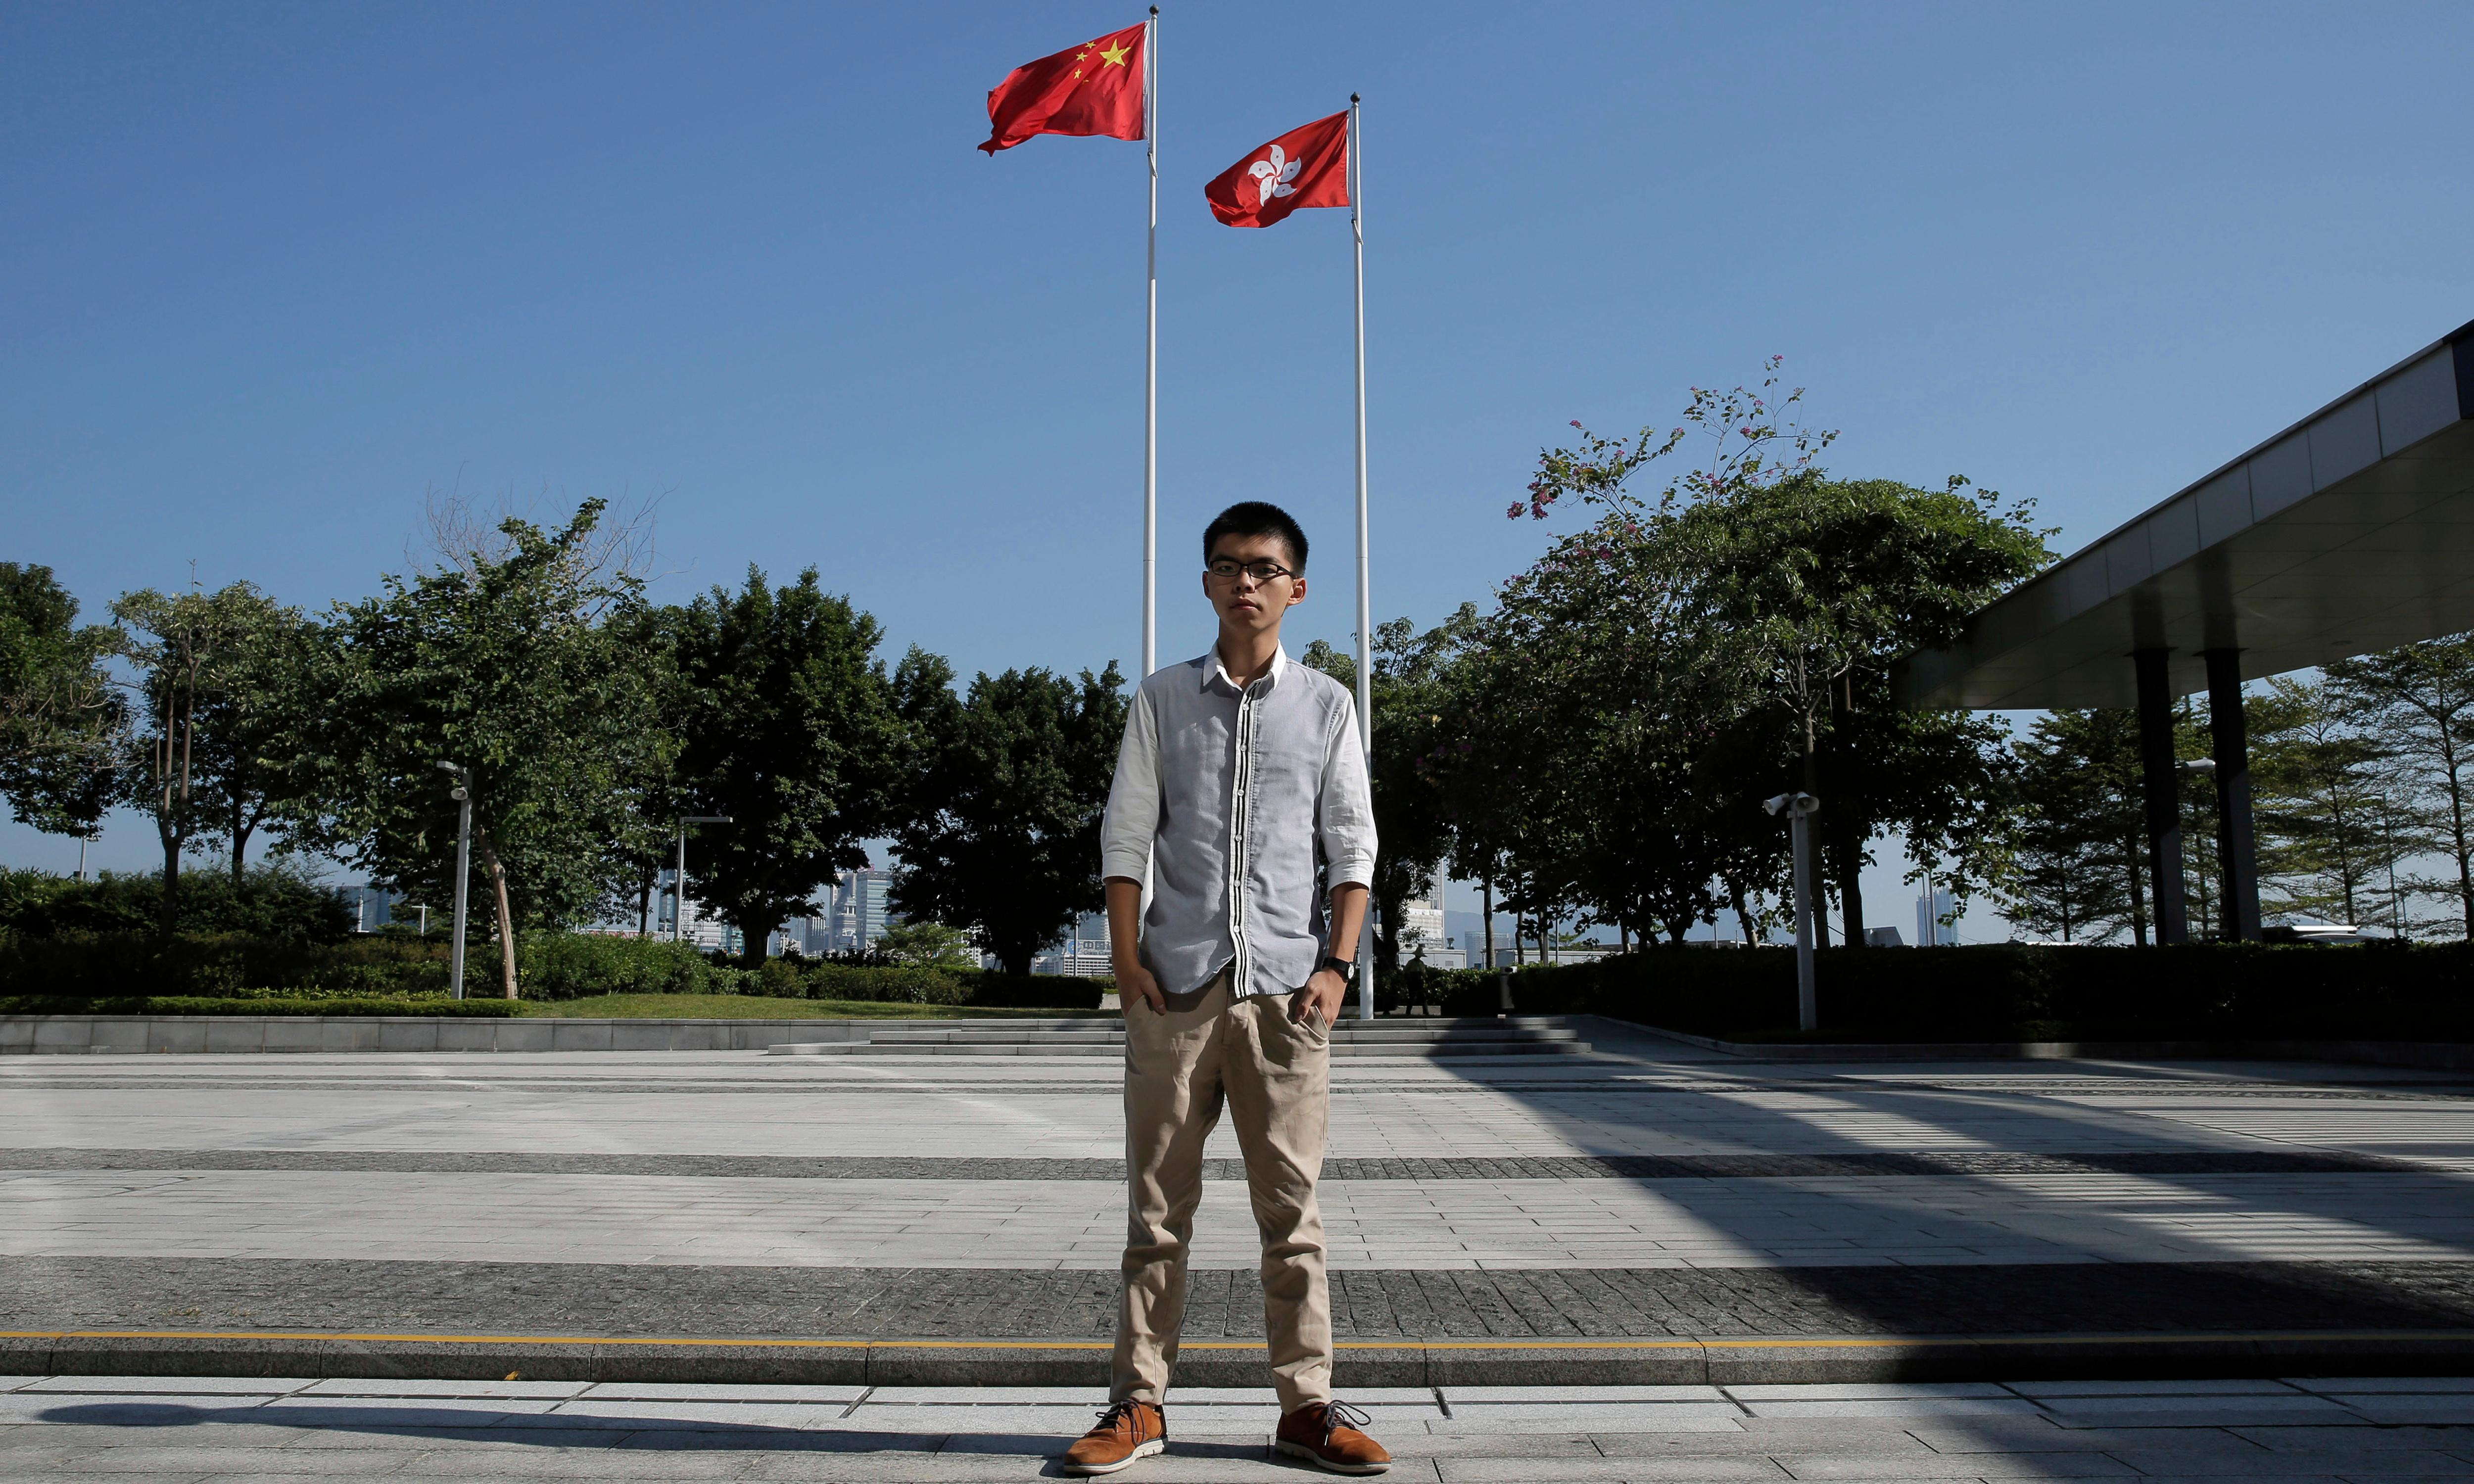 'Hong Kong is at a crossroads': inside prison with the student who took on Beijing